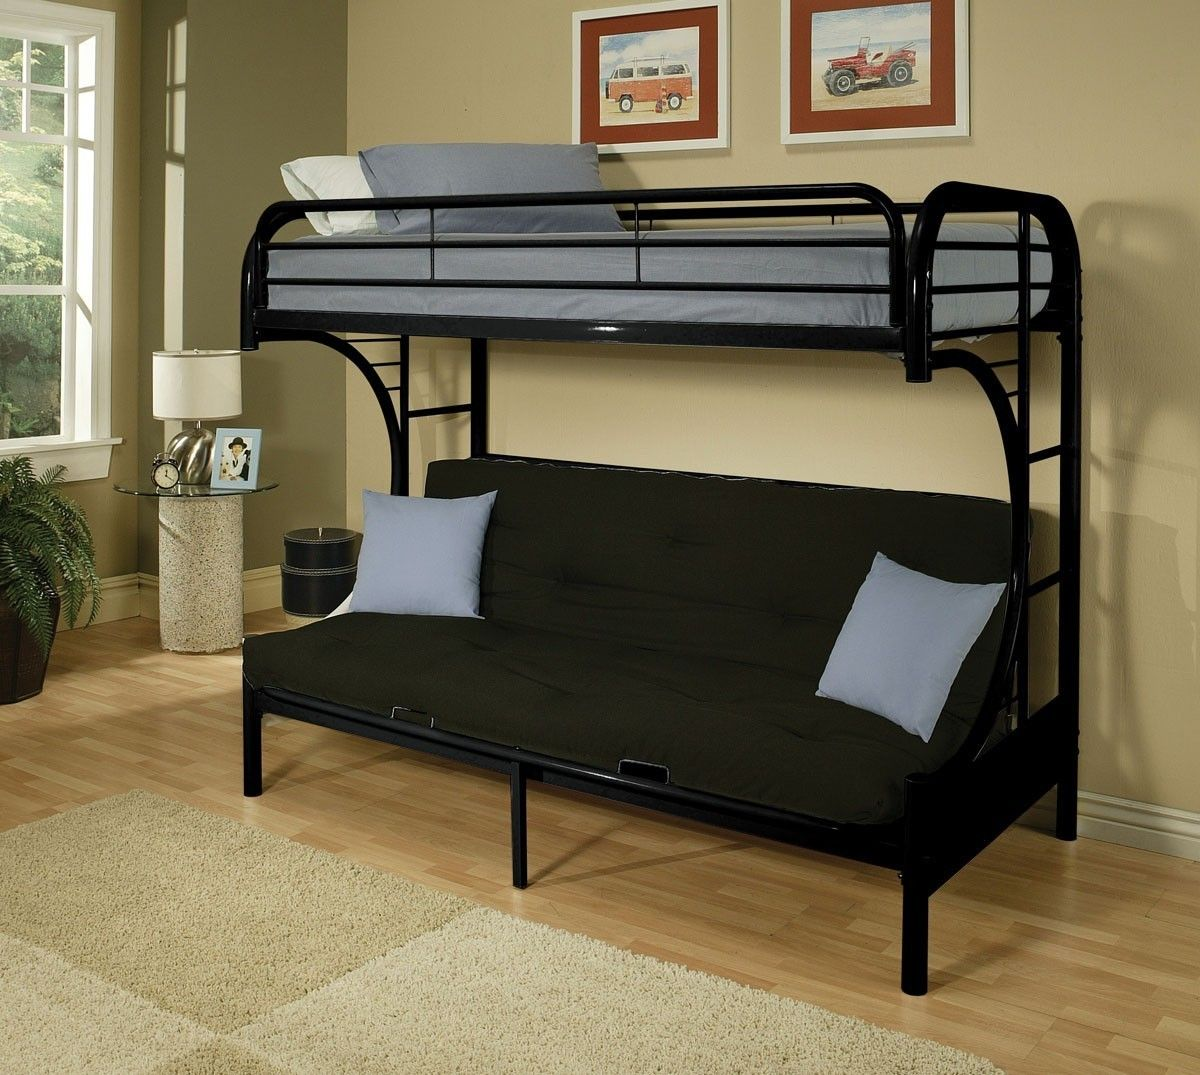 Bunk Bed With Futon Bottom Futon Bunk Bed Childrens Bedroom